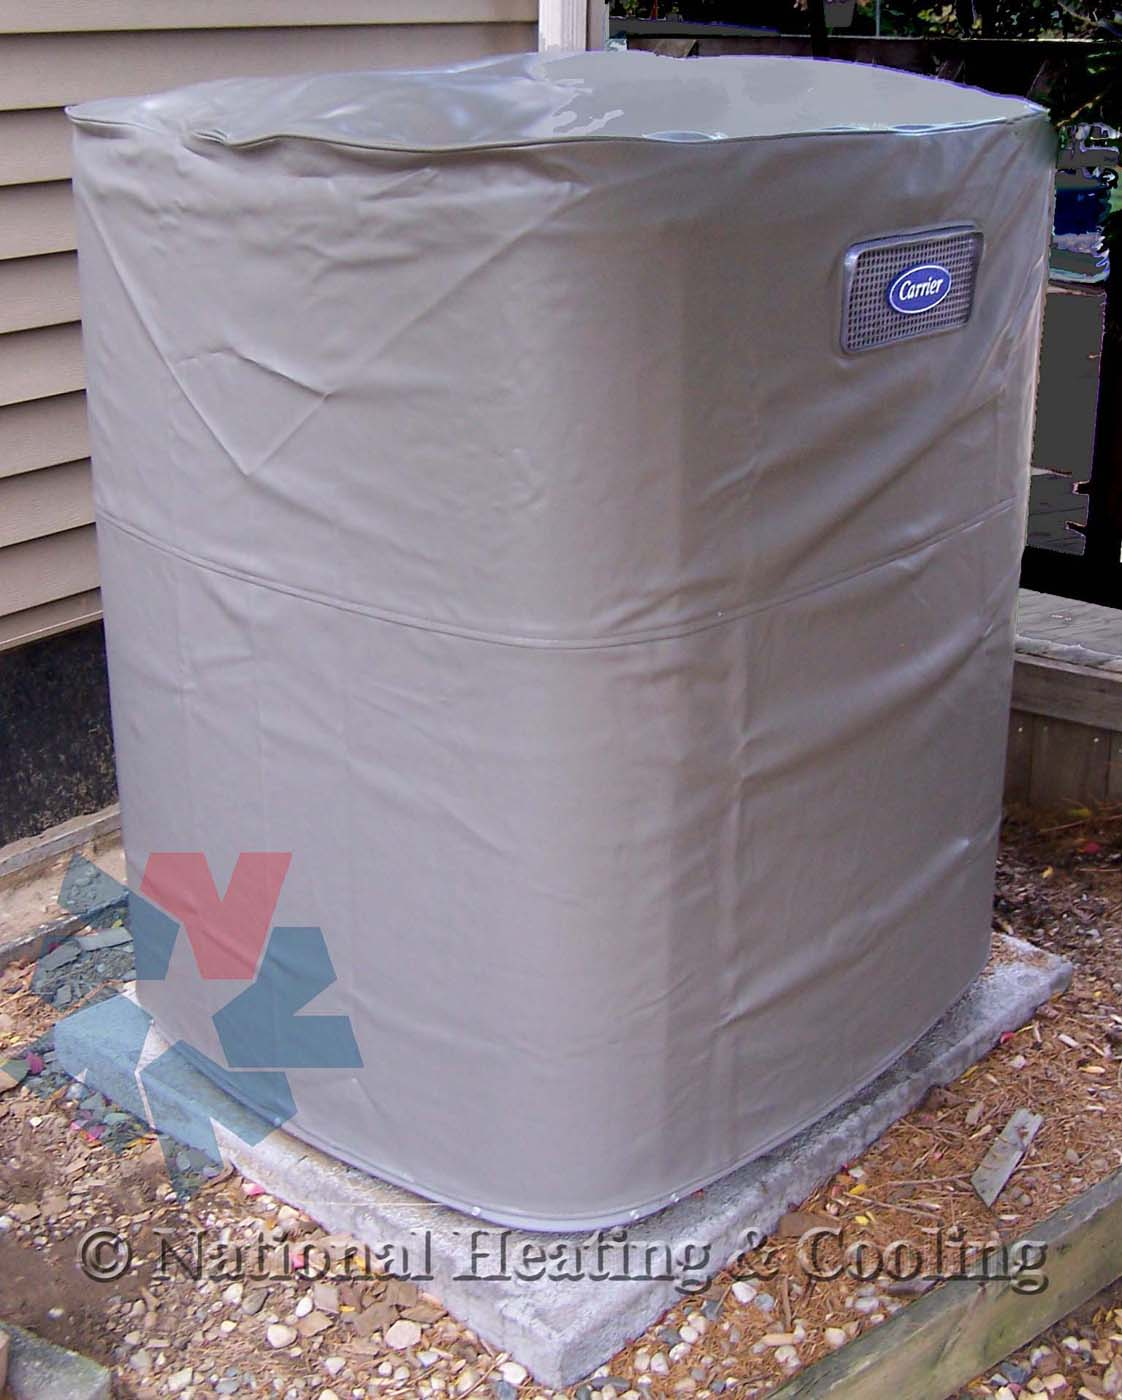 Air Conditioning Covers Carrier Winter Air Conditioner Cover Icc68 058 Fits Condenser